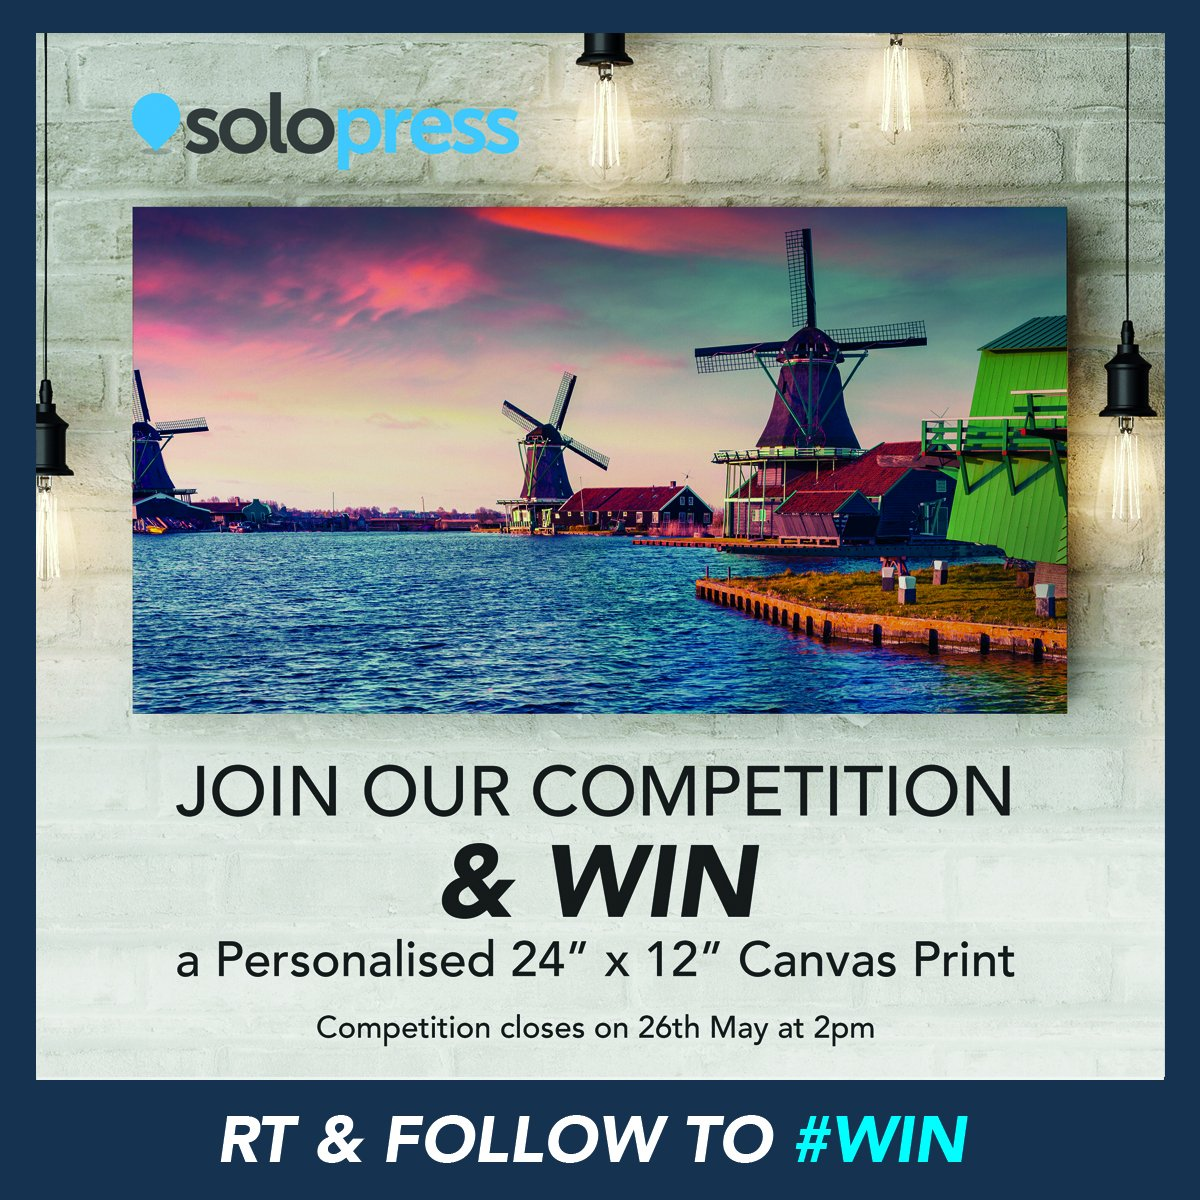 Been wanting your own family portrait?  #WIN a #Canvas with your own design! Just RT &amp; FOLLOW @solopress #giveaway #competitions #rt<br>http://pic.twitter.com/hmXygOmxZP